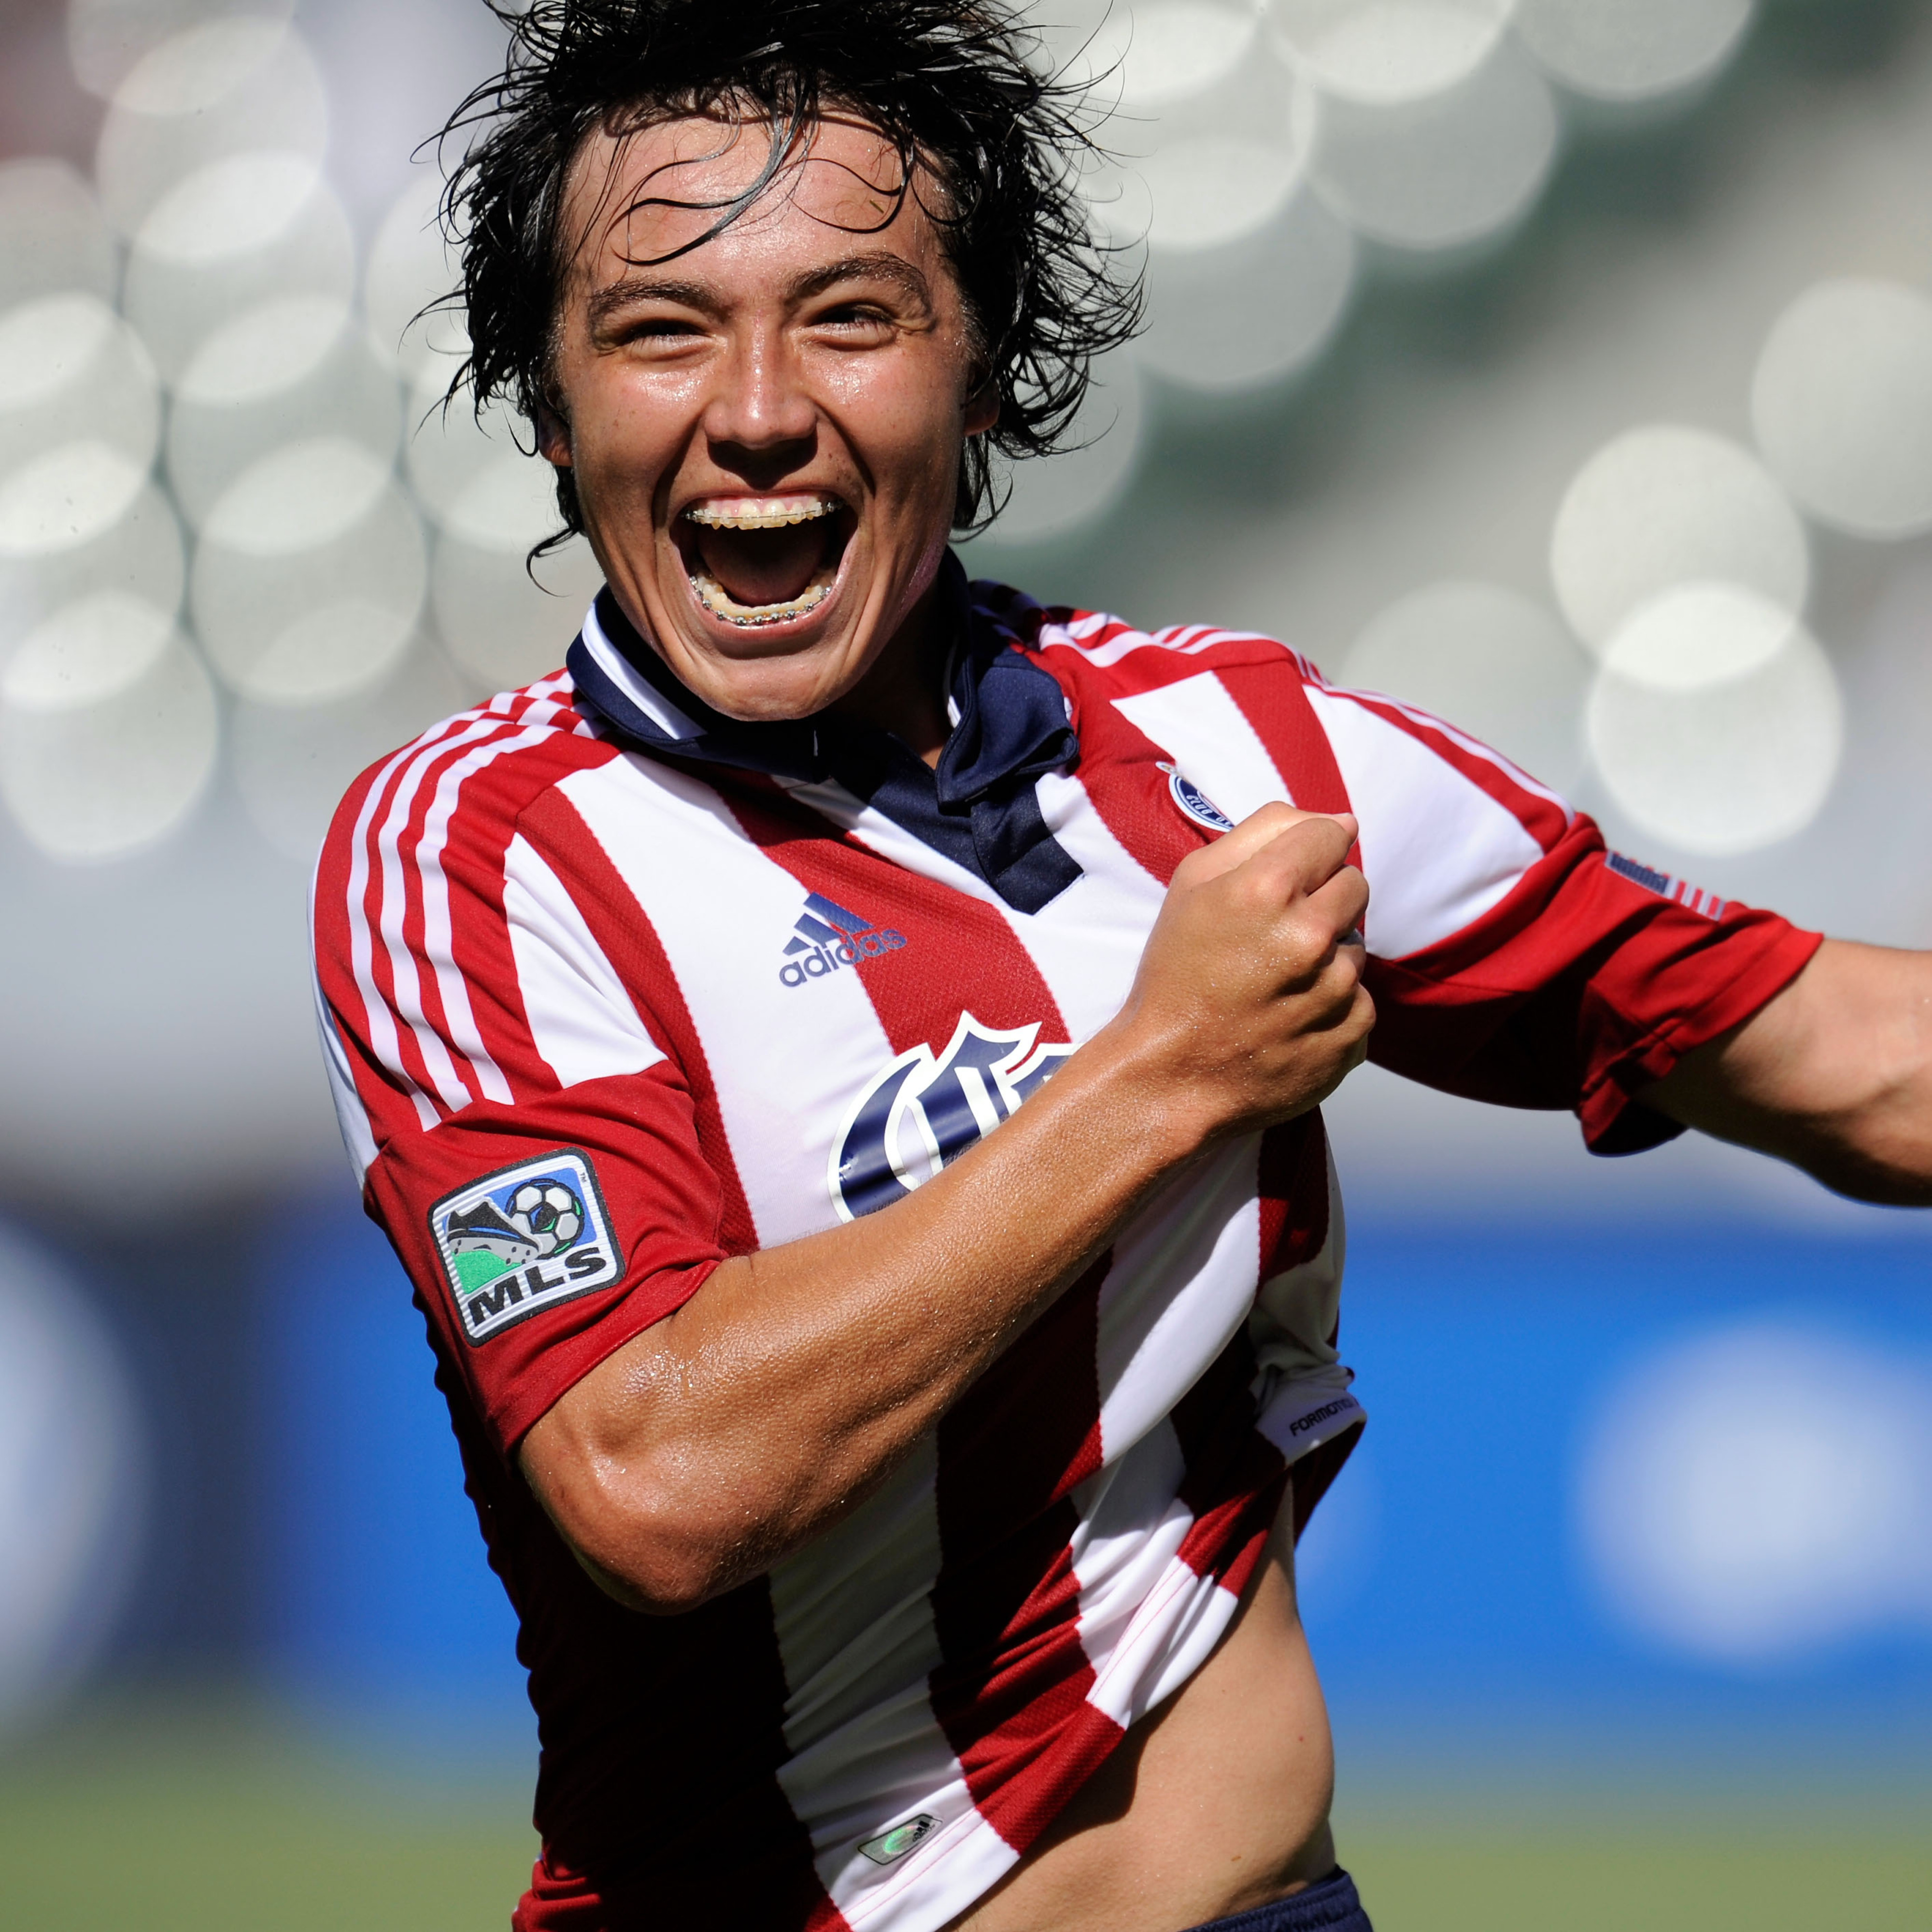 Cubo brought some excitement back in 2013.